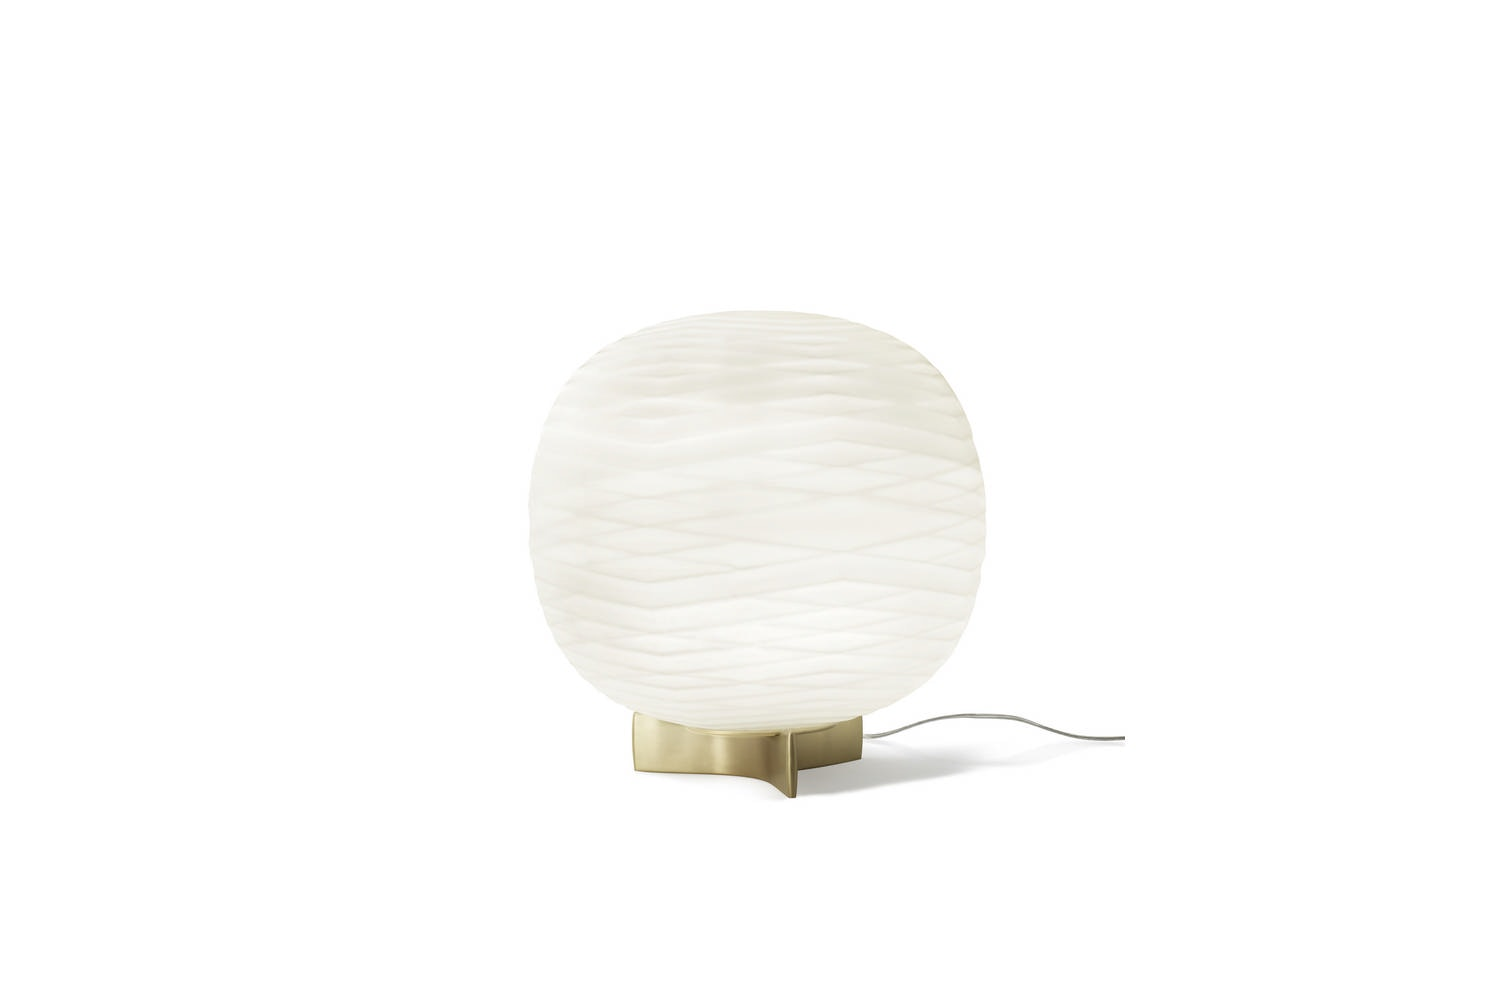 Gem Dimmer Table Lamp by Ludovica & Roberto Palomba for Foscarini